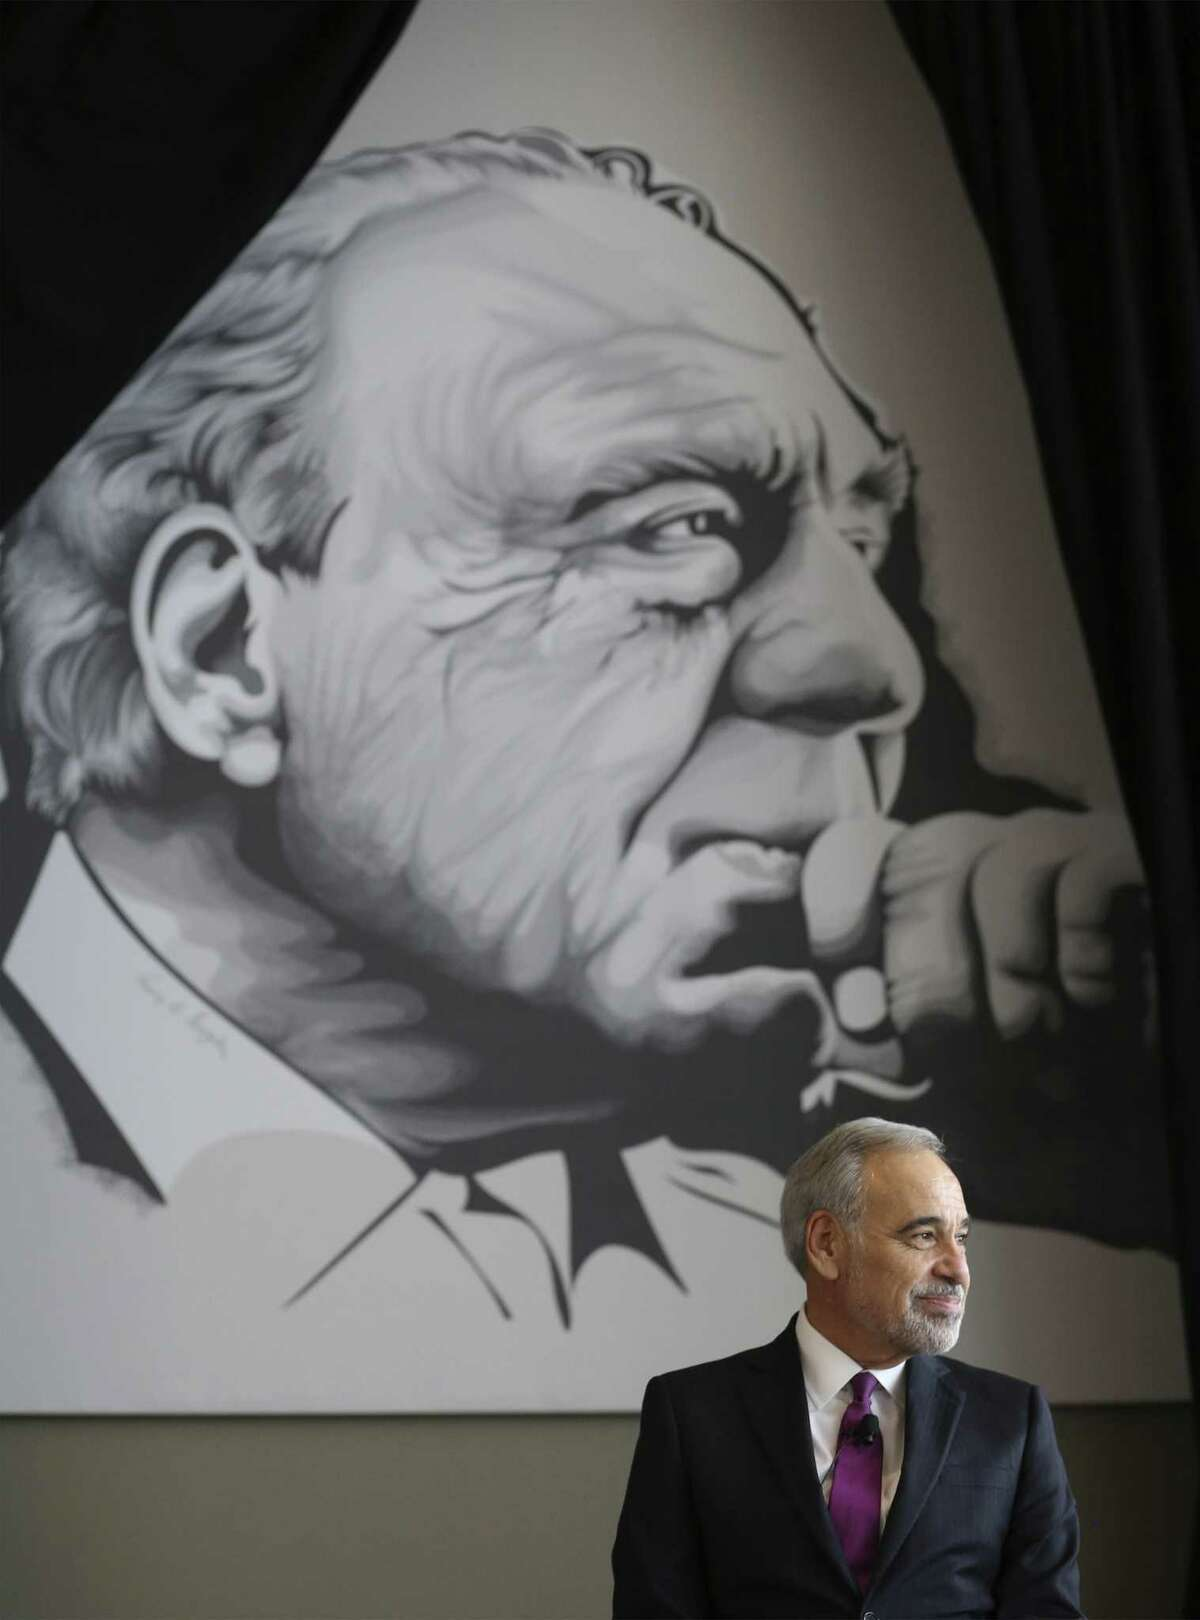 Former Congressional Representative Charlie Gonzalez sits under a mural of his father - one of San Antonio's most iconic politicians - Congressman Henry B. Gonzalez as family, friend and admirers gather at the Convention Center to see the unveiling of Gonzalez's resurrected mural on Wednesday, May 15, 2019. The original mural was painted by artist Ronald Rocha at Estela's Mexican Restaurant on the city's West Side but was painted over by building's new owners. Through an effort by businessman Louis Escareno and many others, a larger than life rendering of the mural was digitally recreated by UTSA adjunct professor and artist Analy Diego and unveiled on Wednesday evening. (Kin Man Hui/San Antonio Express-News)